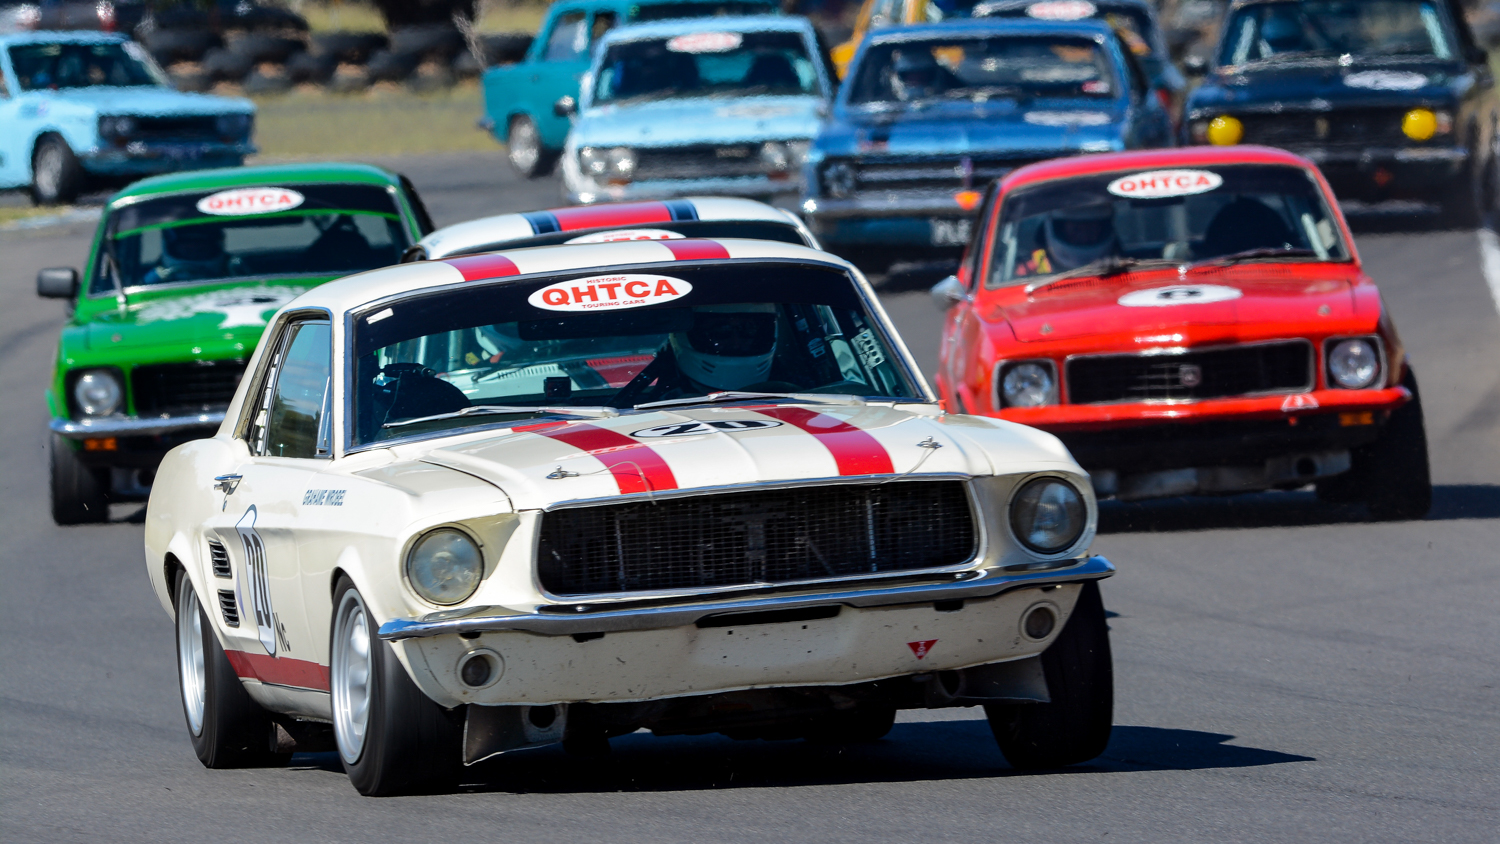 Grahame Wrobel's Mustang leading a gaggle of Group N cars. Ian Welsh